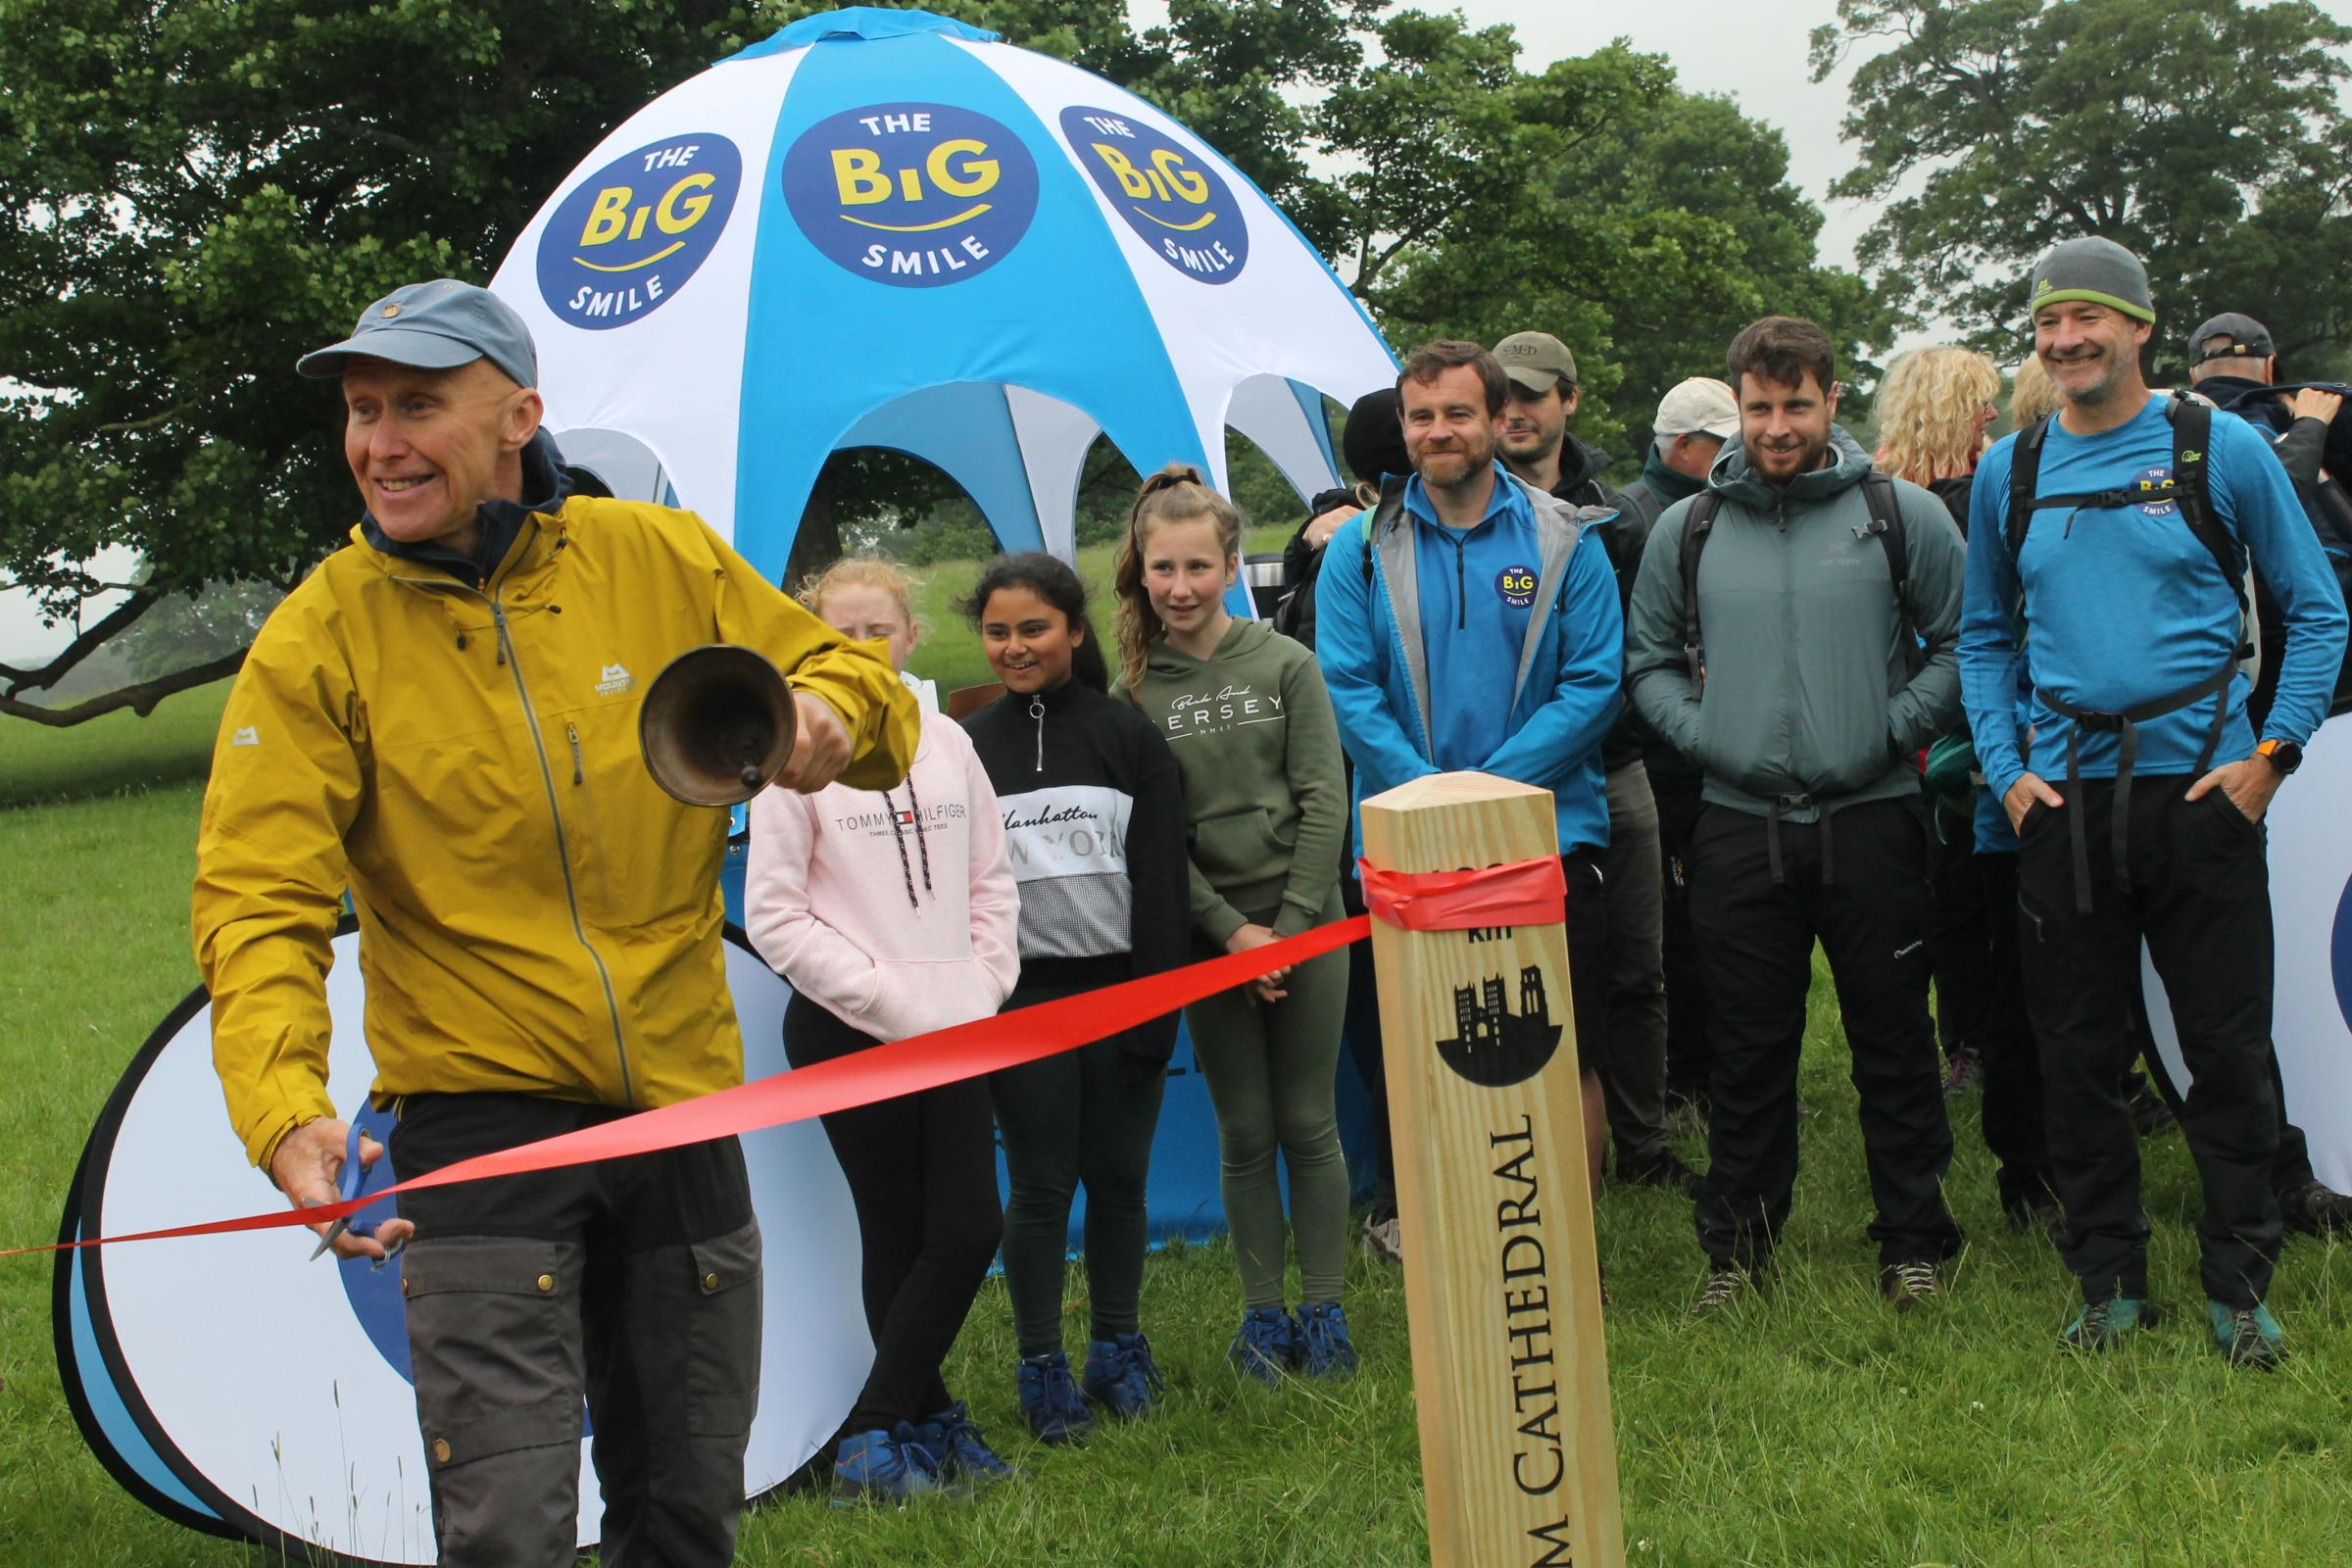 The first steps to making a difference – walking campaign starts at Raby Castle